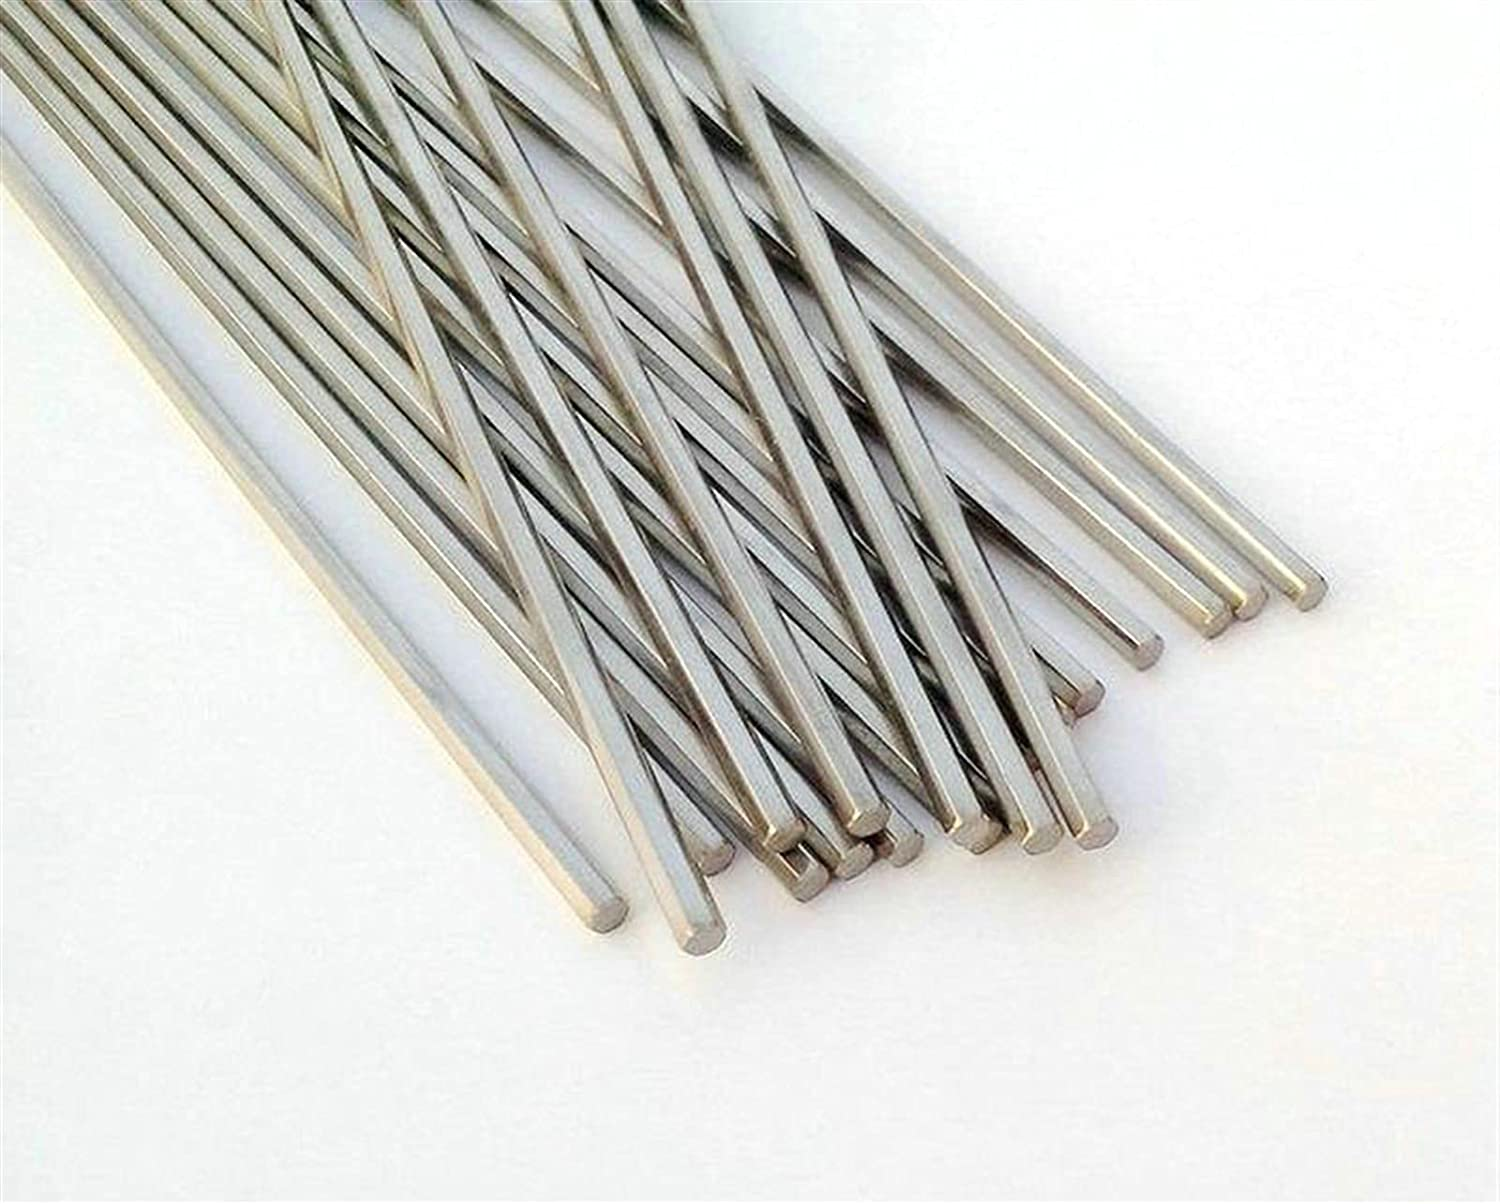 LXQS Hollow Shaft Sleeve 10pcs Steel 3mm Stainless Sh Popular brand Finally popular brand in the world 55mm-200mm